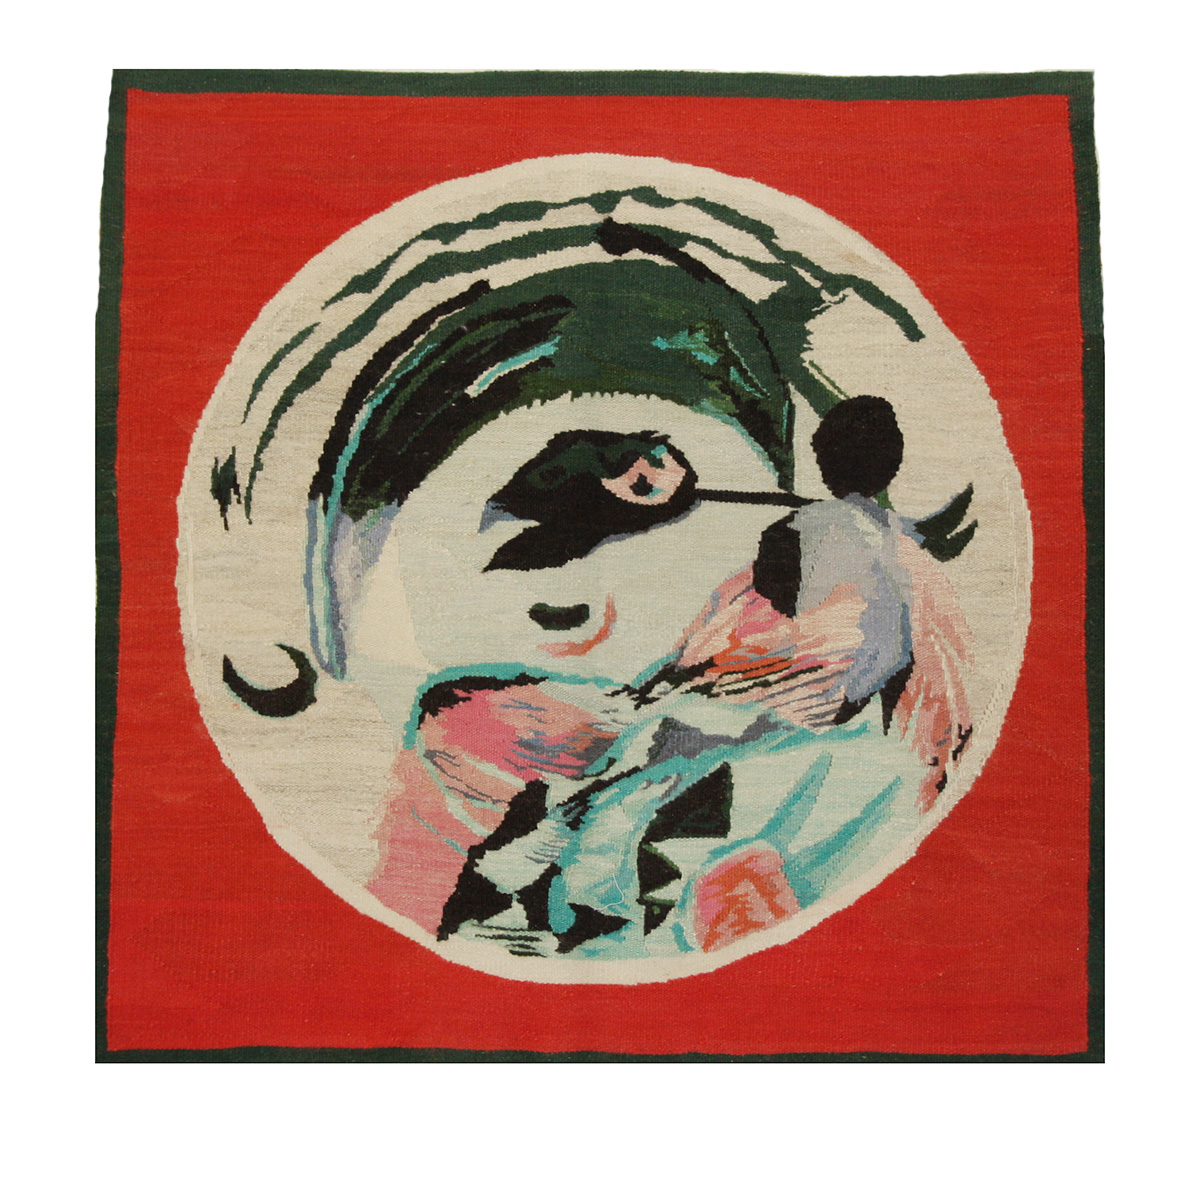 Rococo I Size: 1.02m x 1.09m First Woven: 2008 Edition of 5